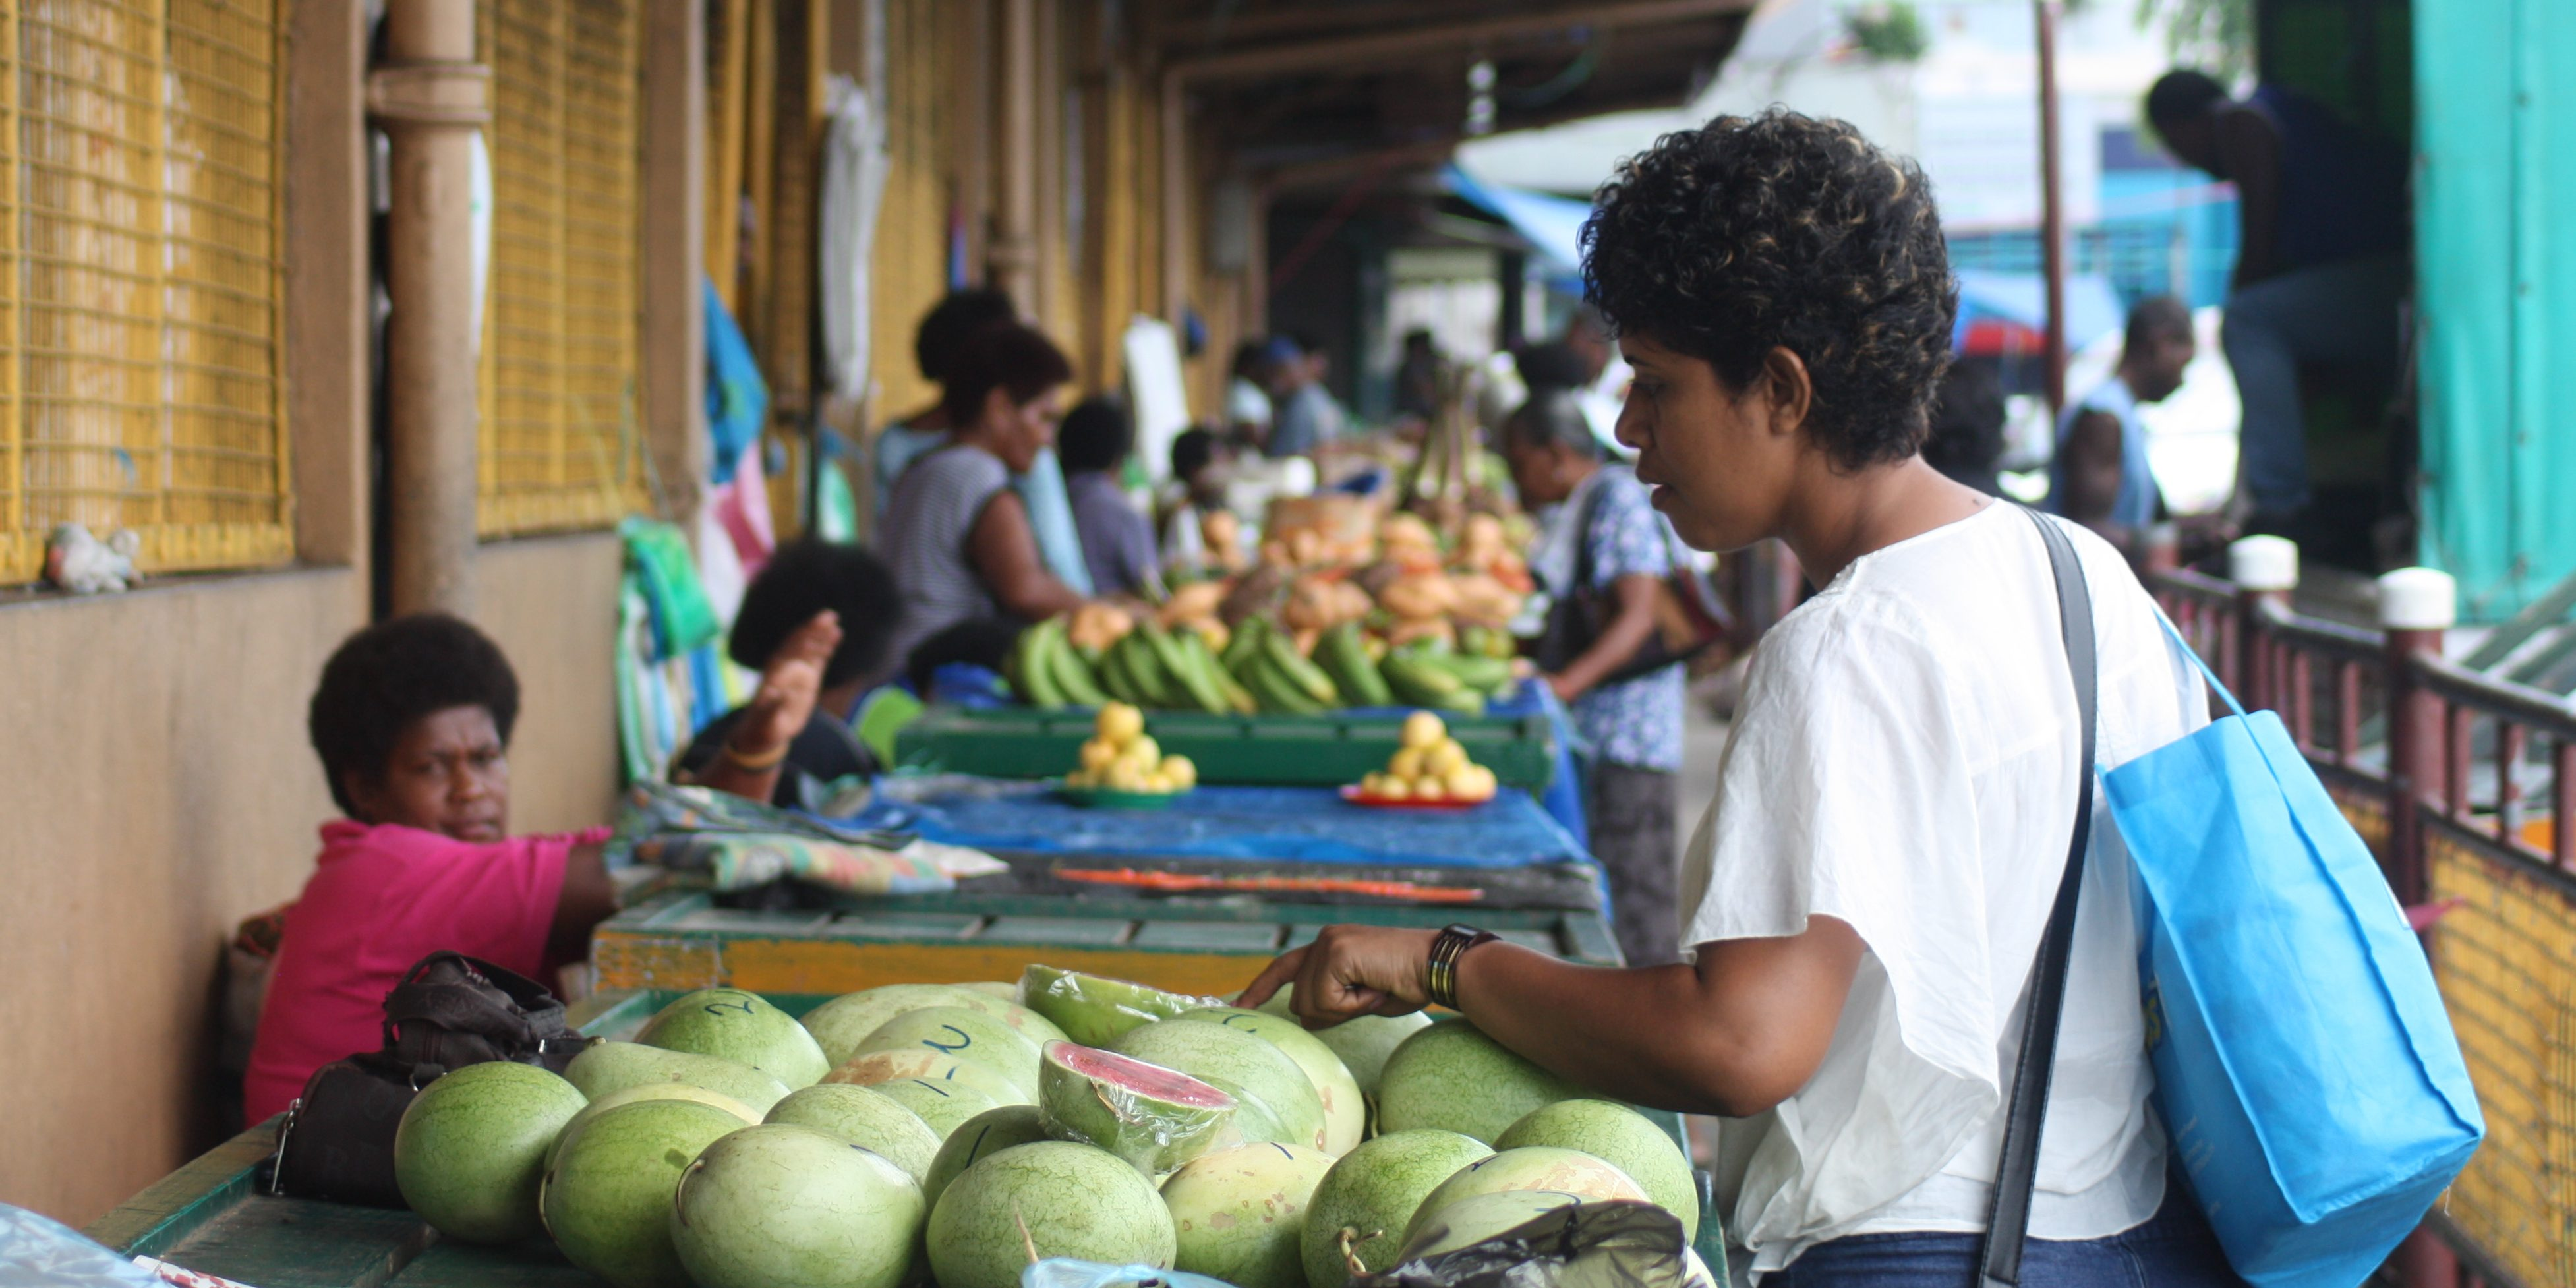 Volunteer in Fiji to have your own taste of the fiji food and history of fiji.